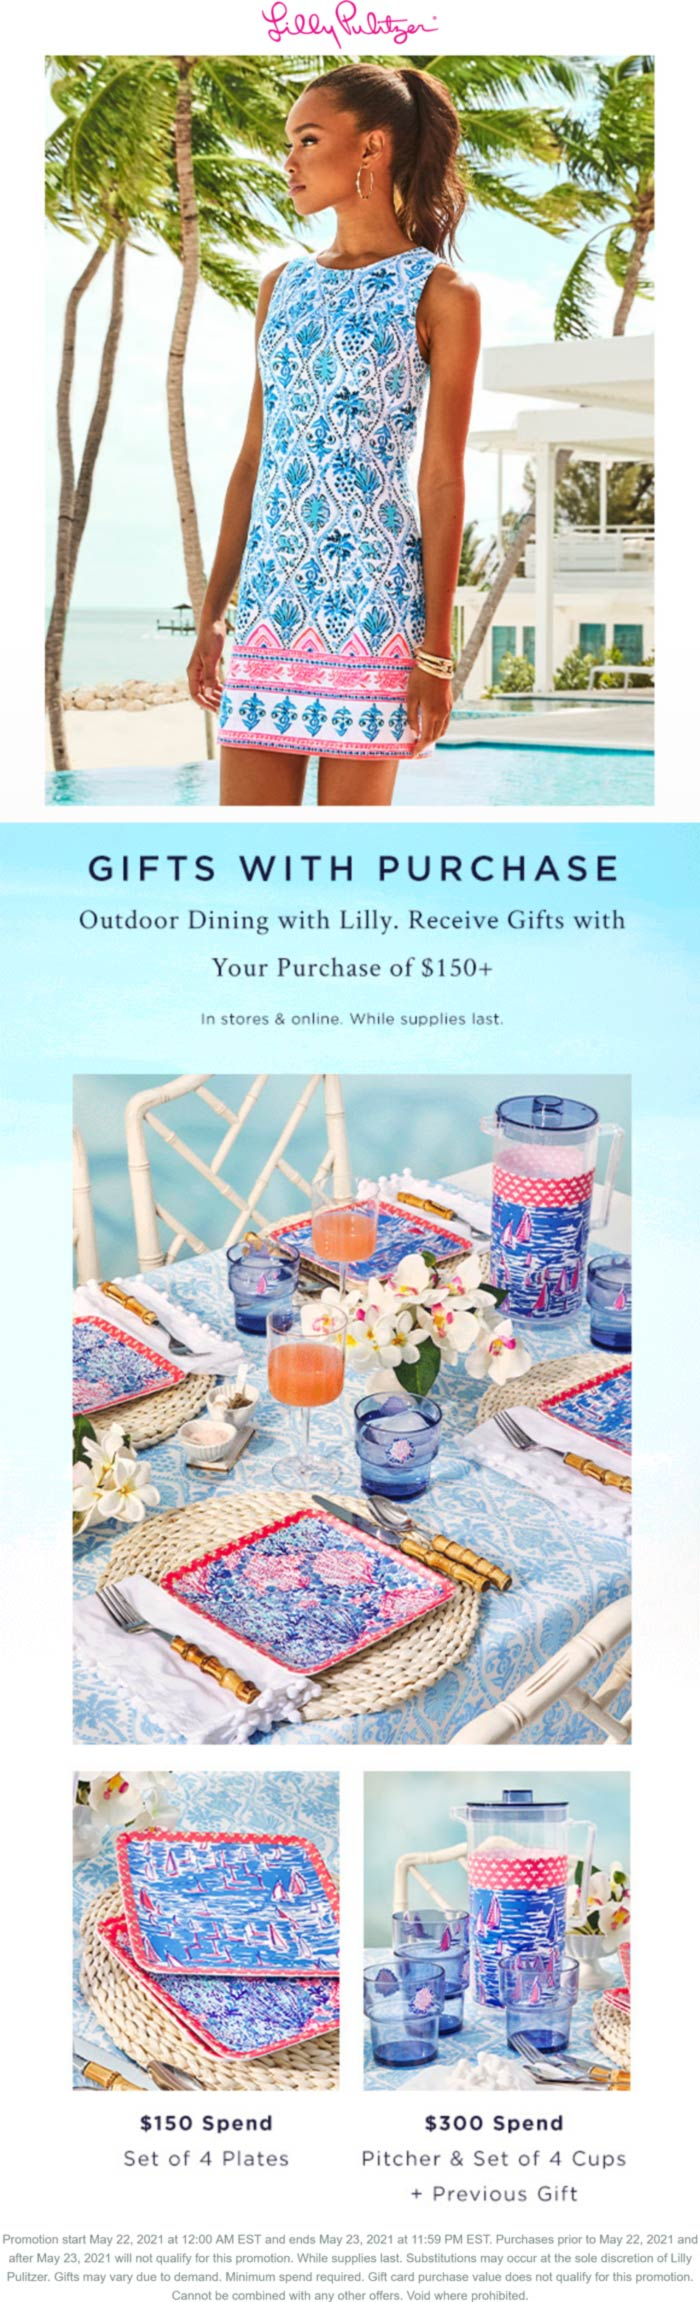 Lilly Pulitzer restaurants Coupon  Outdoor dining sets free with $150+ spent at Lilly Pulitzer, ditto online #lillypulitzer